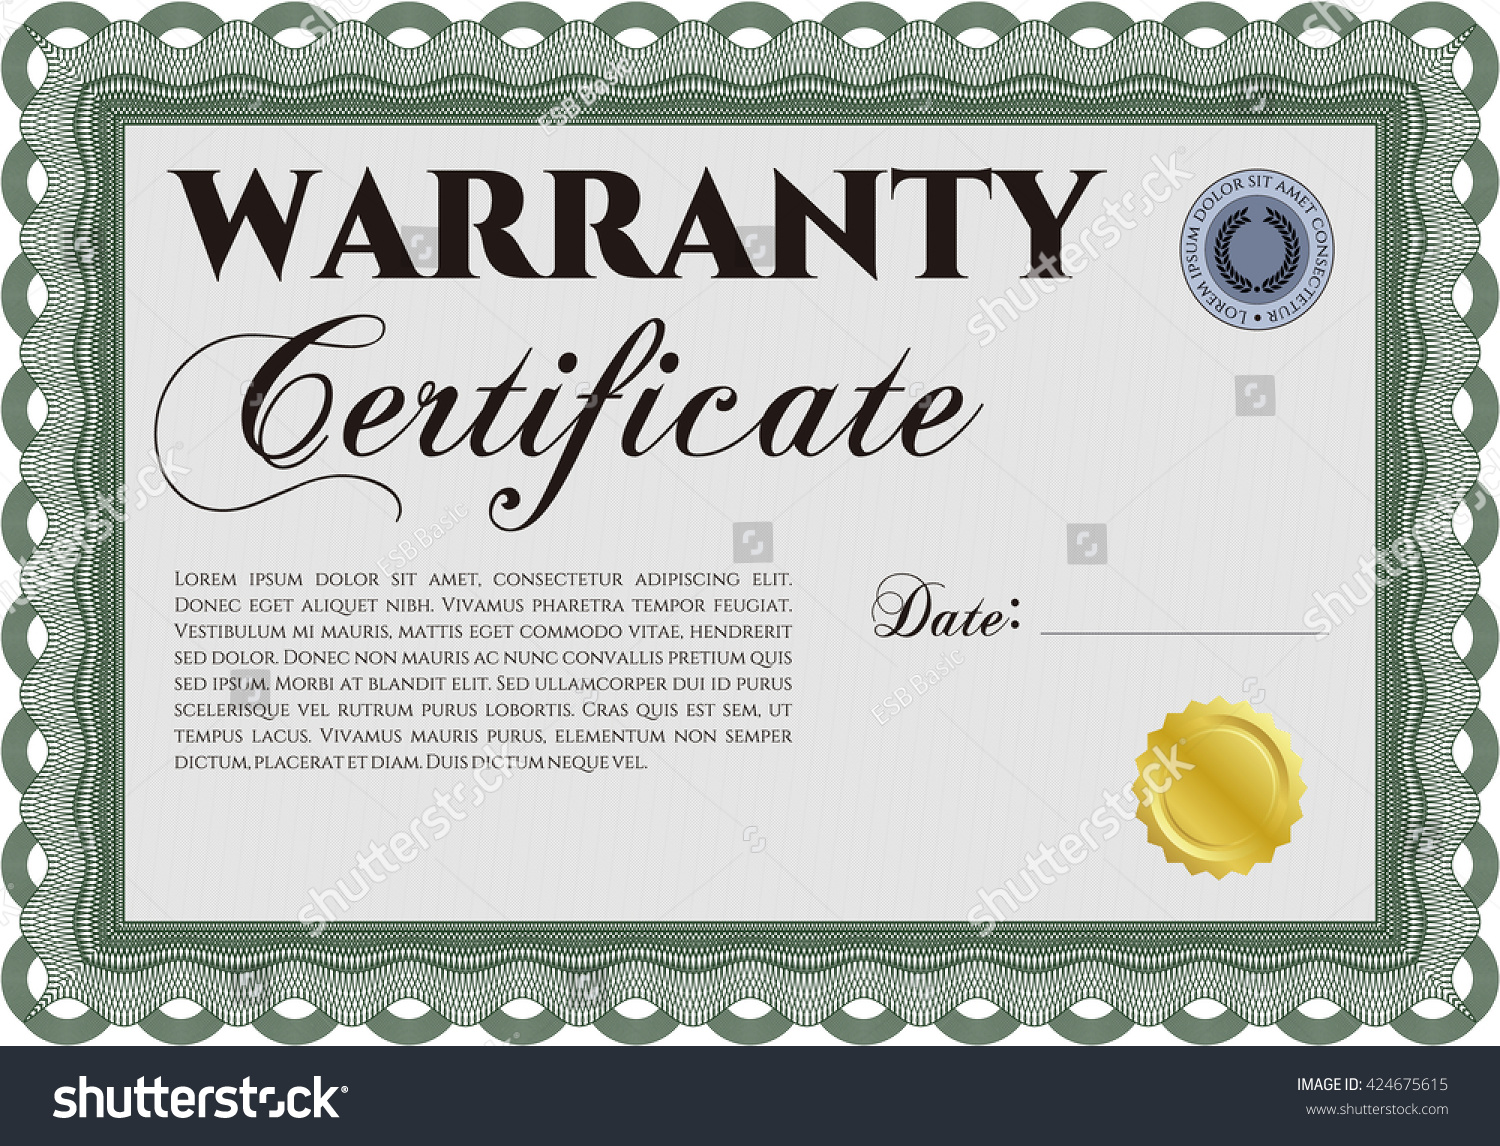 Warranty certificate template microsoft images certificate warranty certificate template microsoft image collections other gallery of warranty certificate template microsoft yadclub images xflitez Gallery